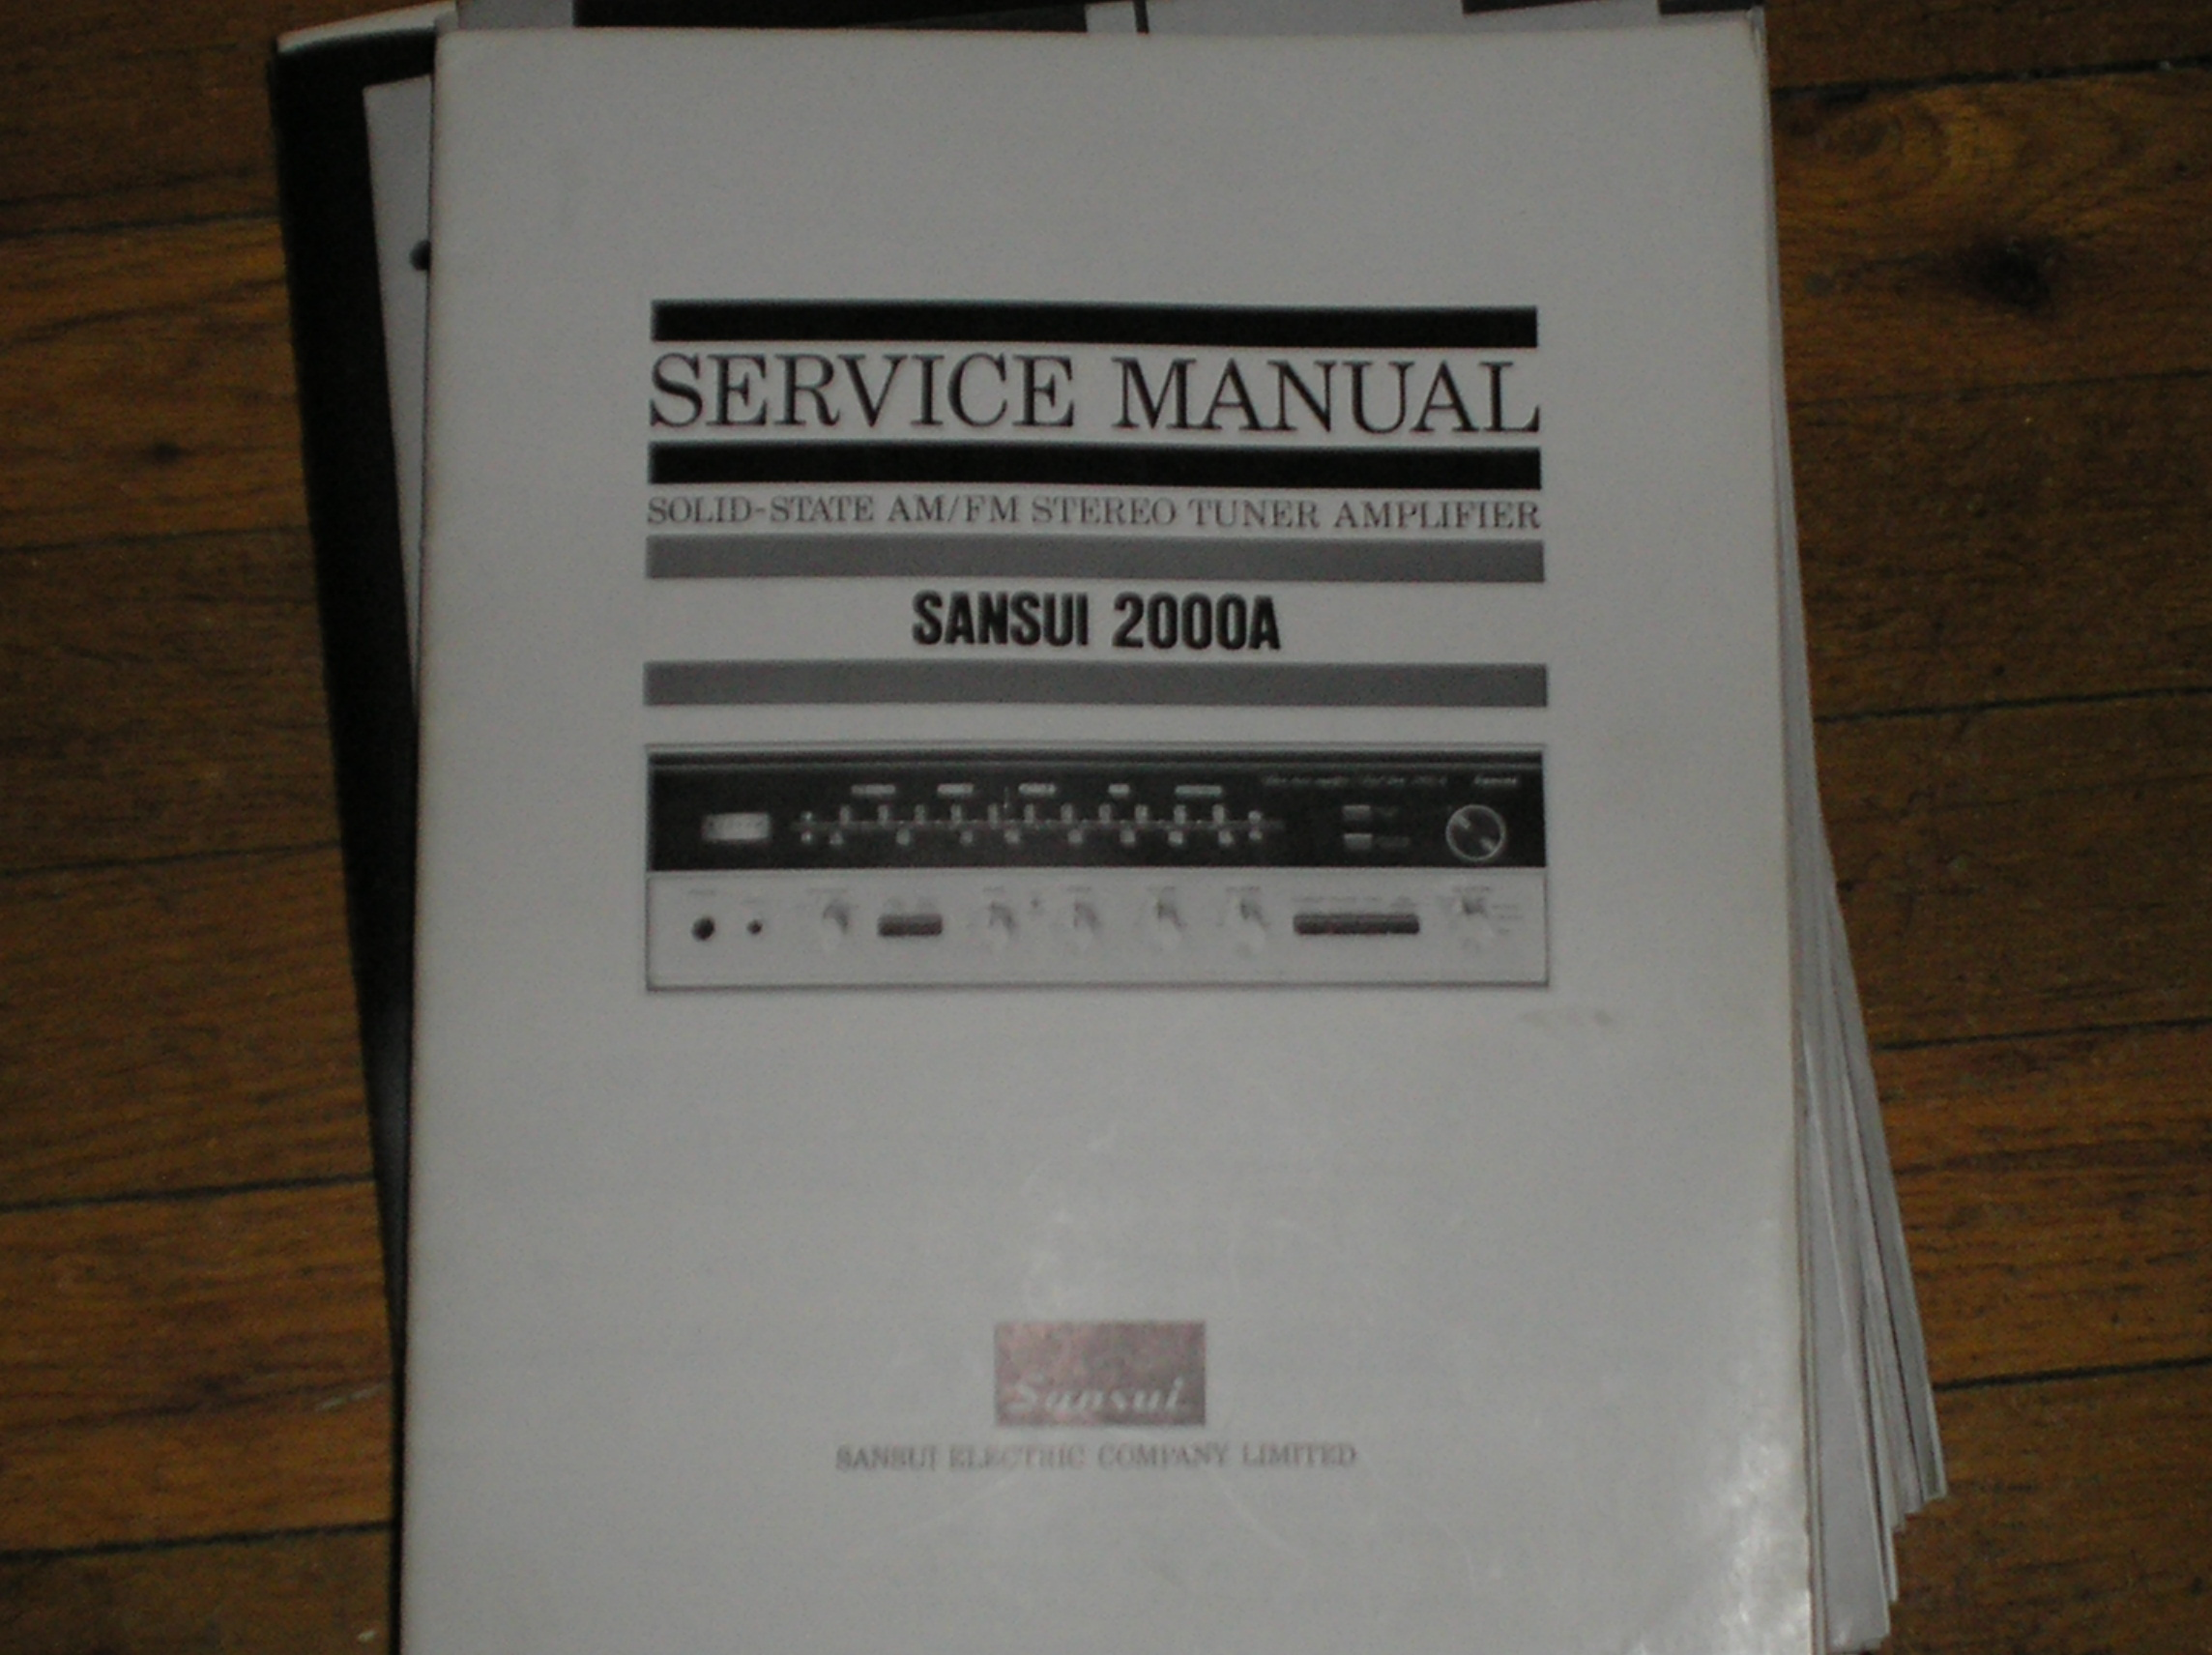 2000A Tuner Amplifier Service Manual